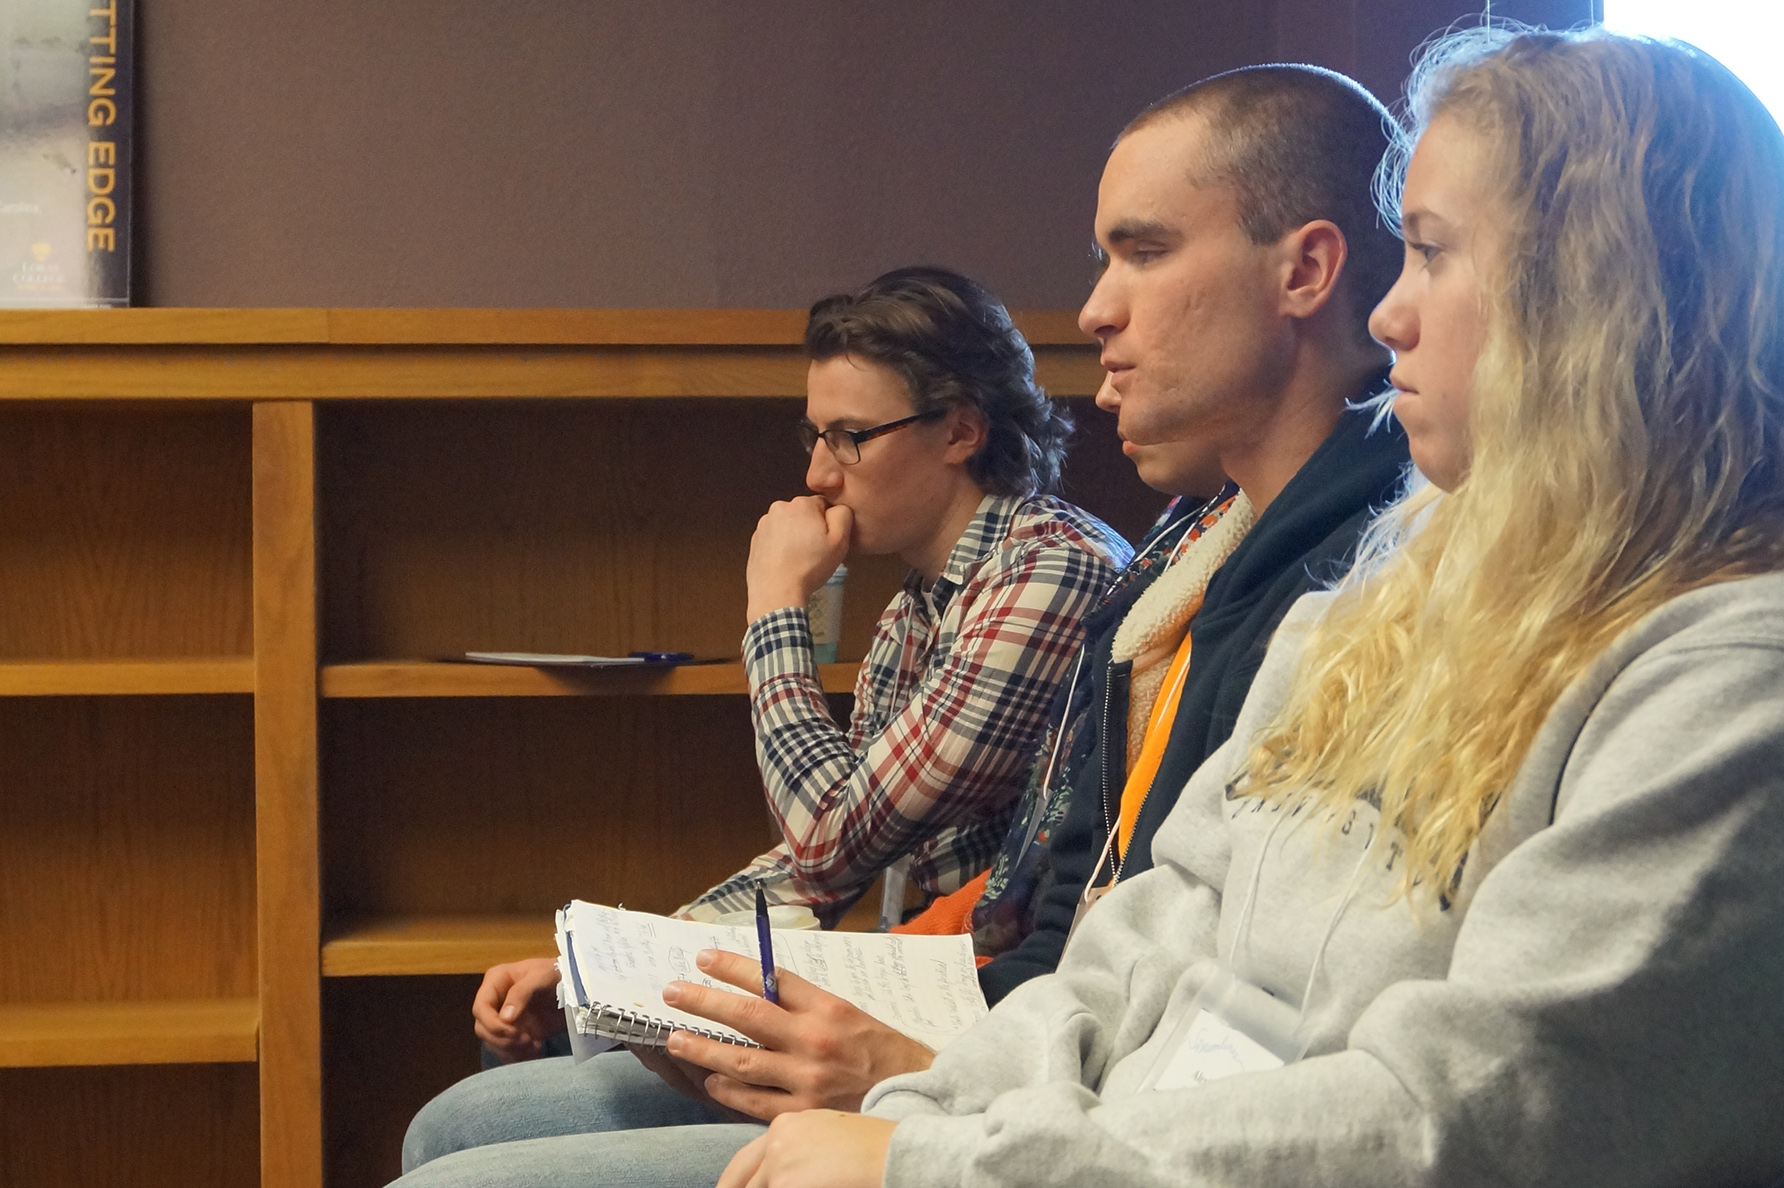 English students in class listening to a lecture at Clarke University.